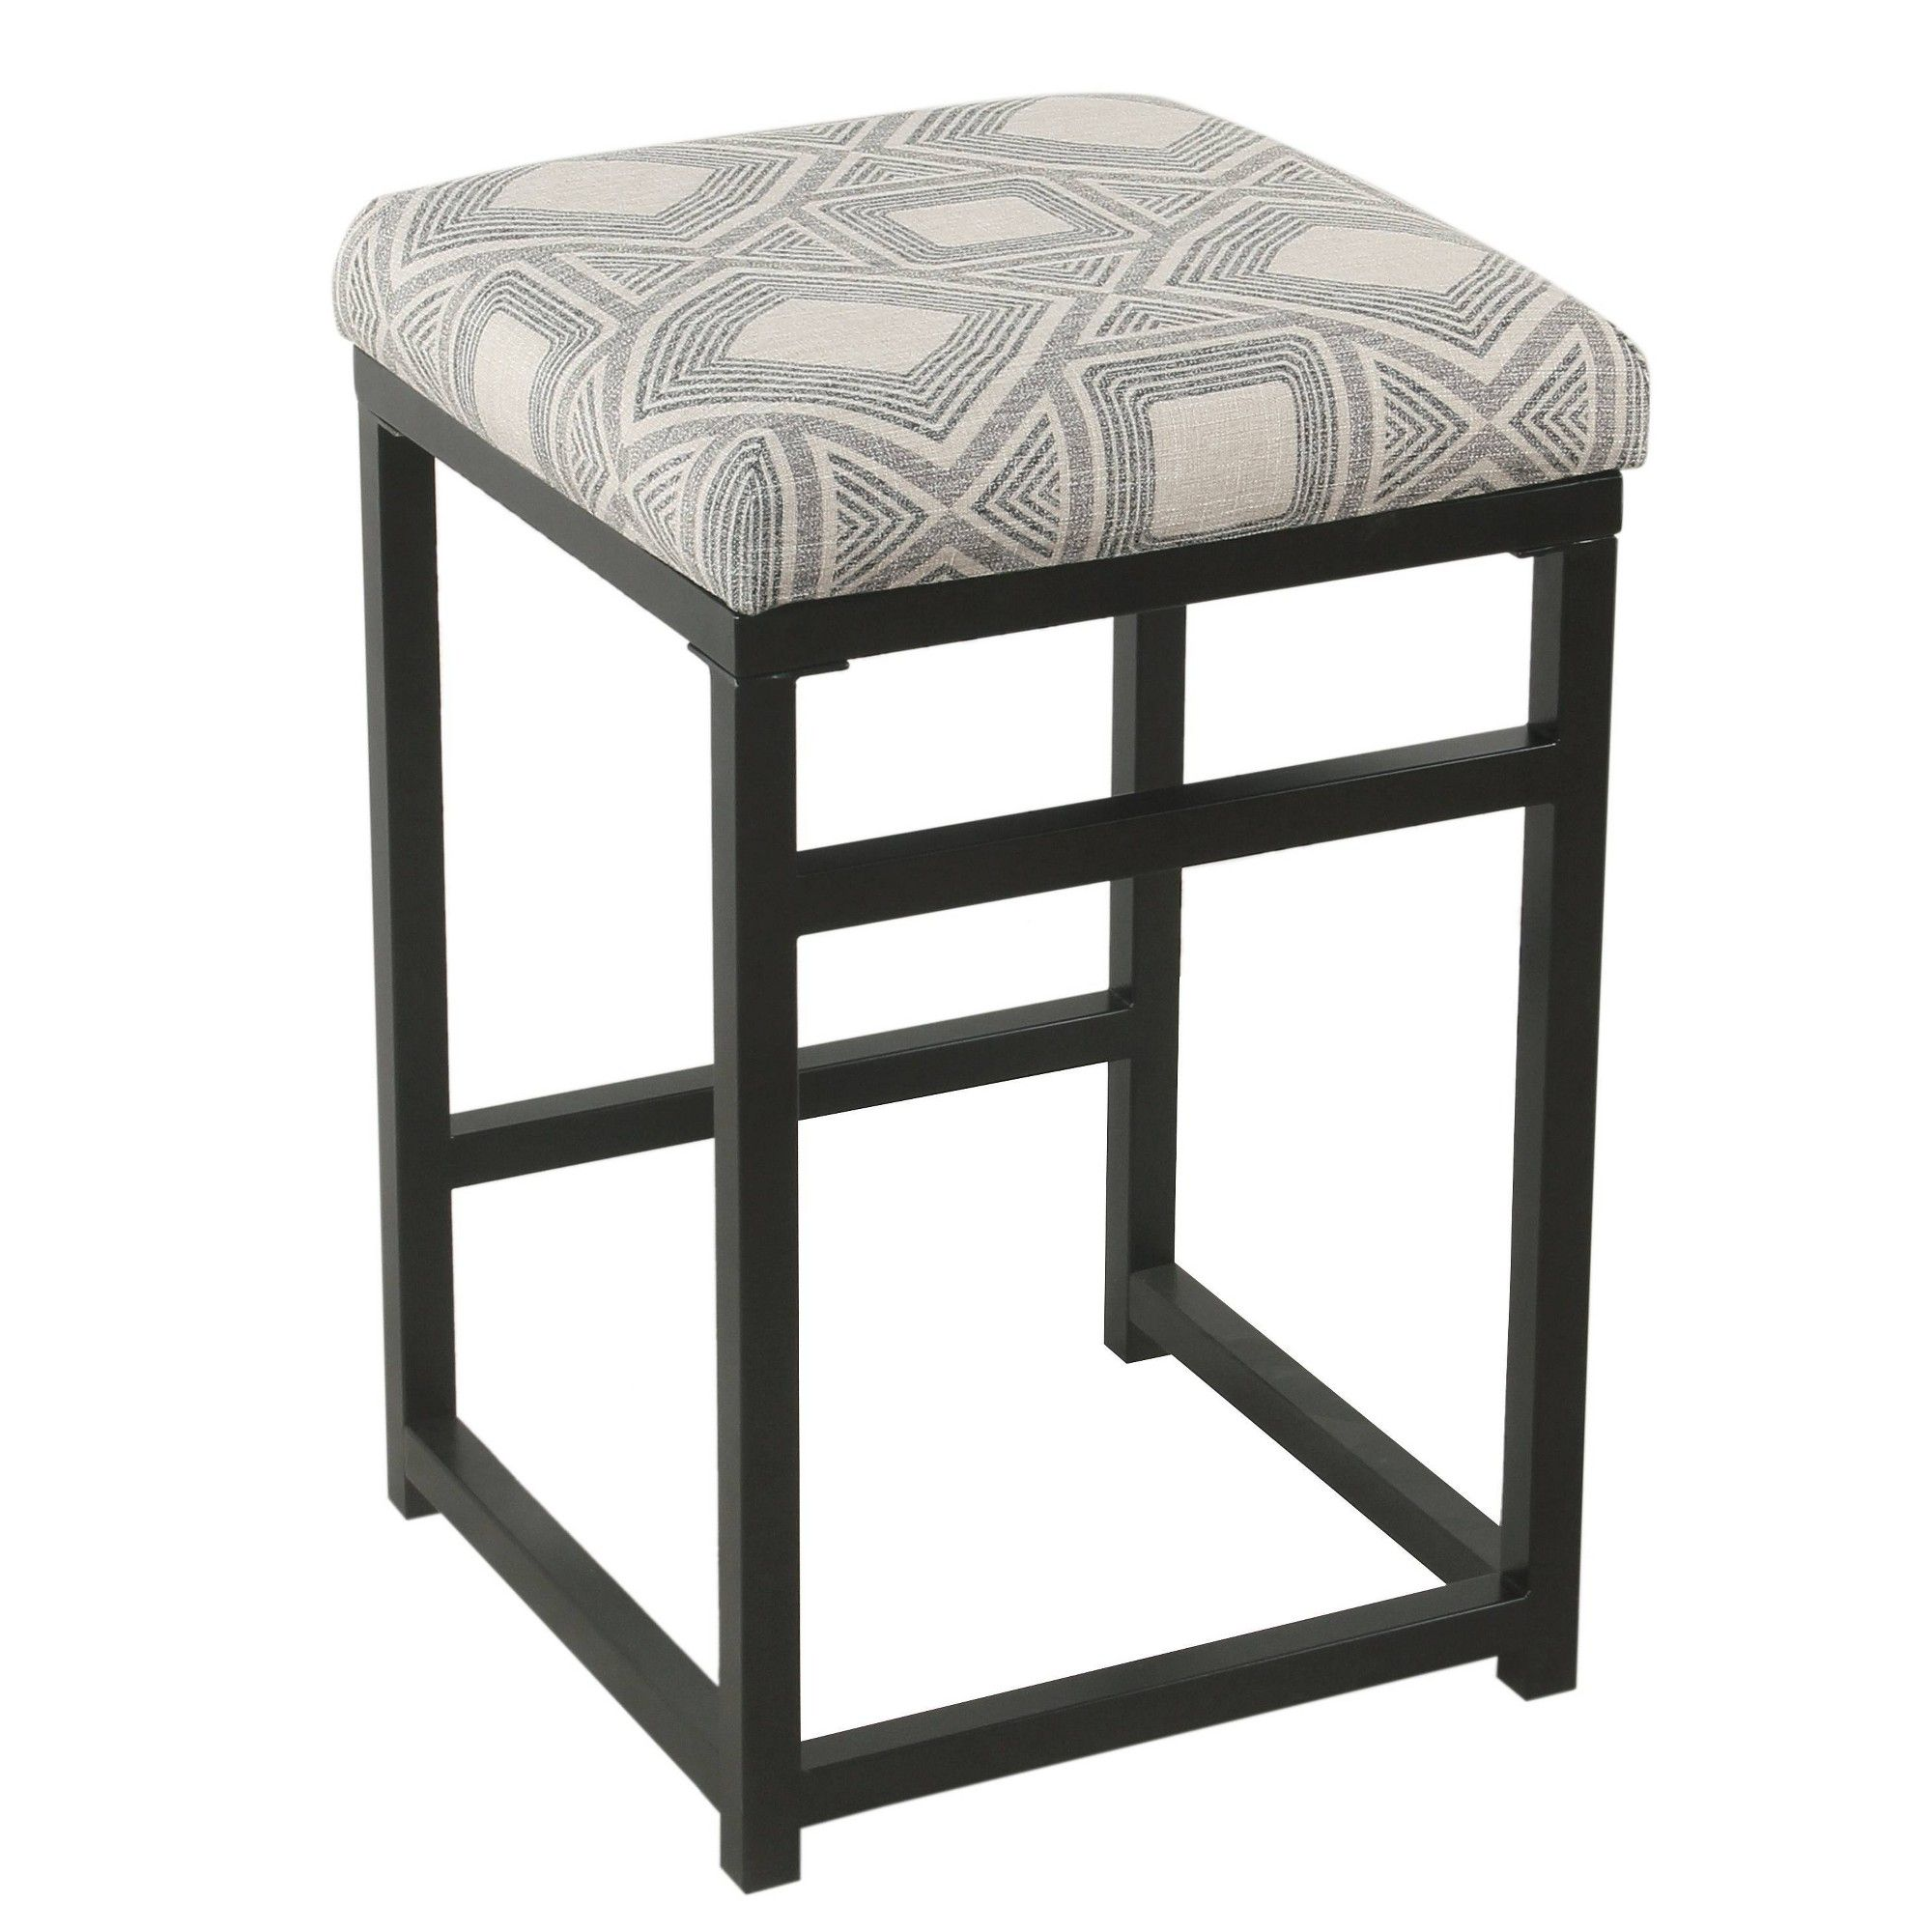 Enjoyable 24 Open Back Counter Stool Square Geometric Charcoal Grey Gmtry Best Dining Table And Chair Ideas Images Gmtryco